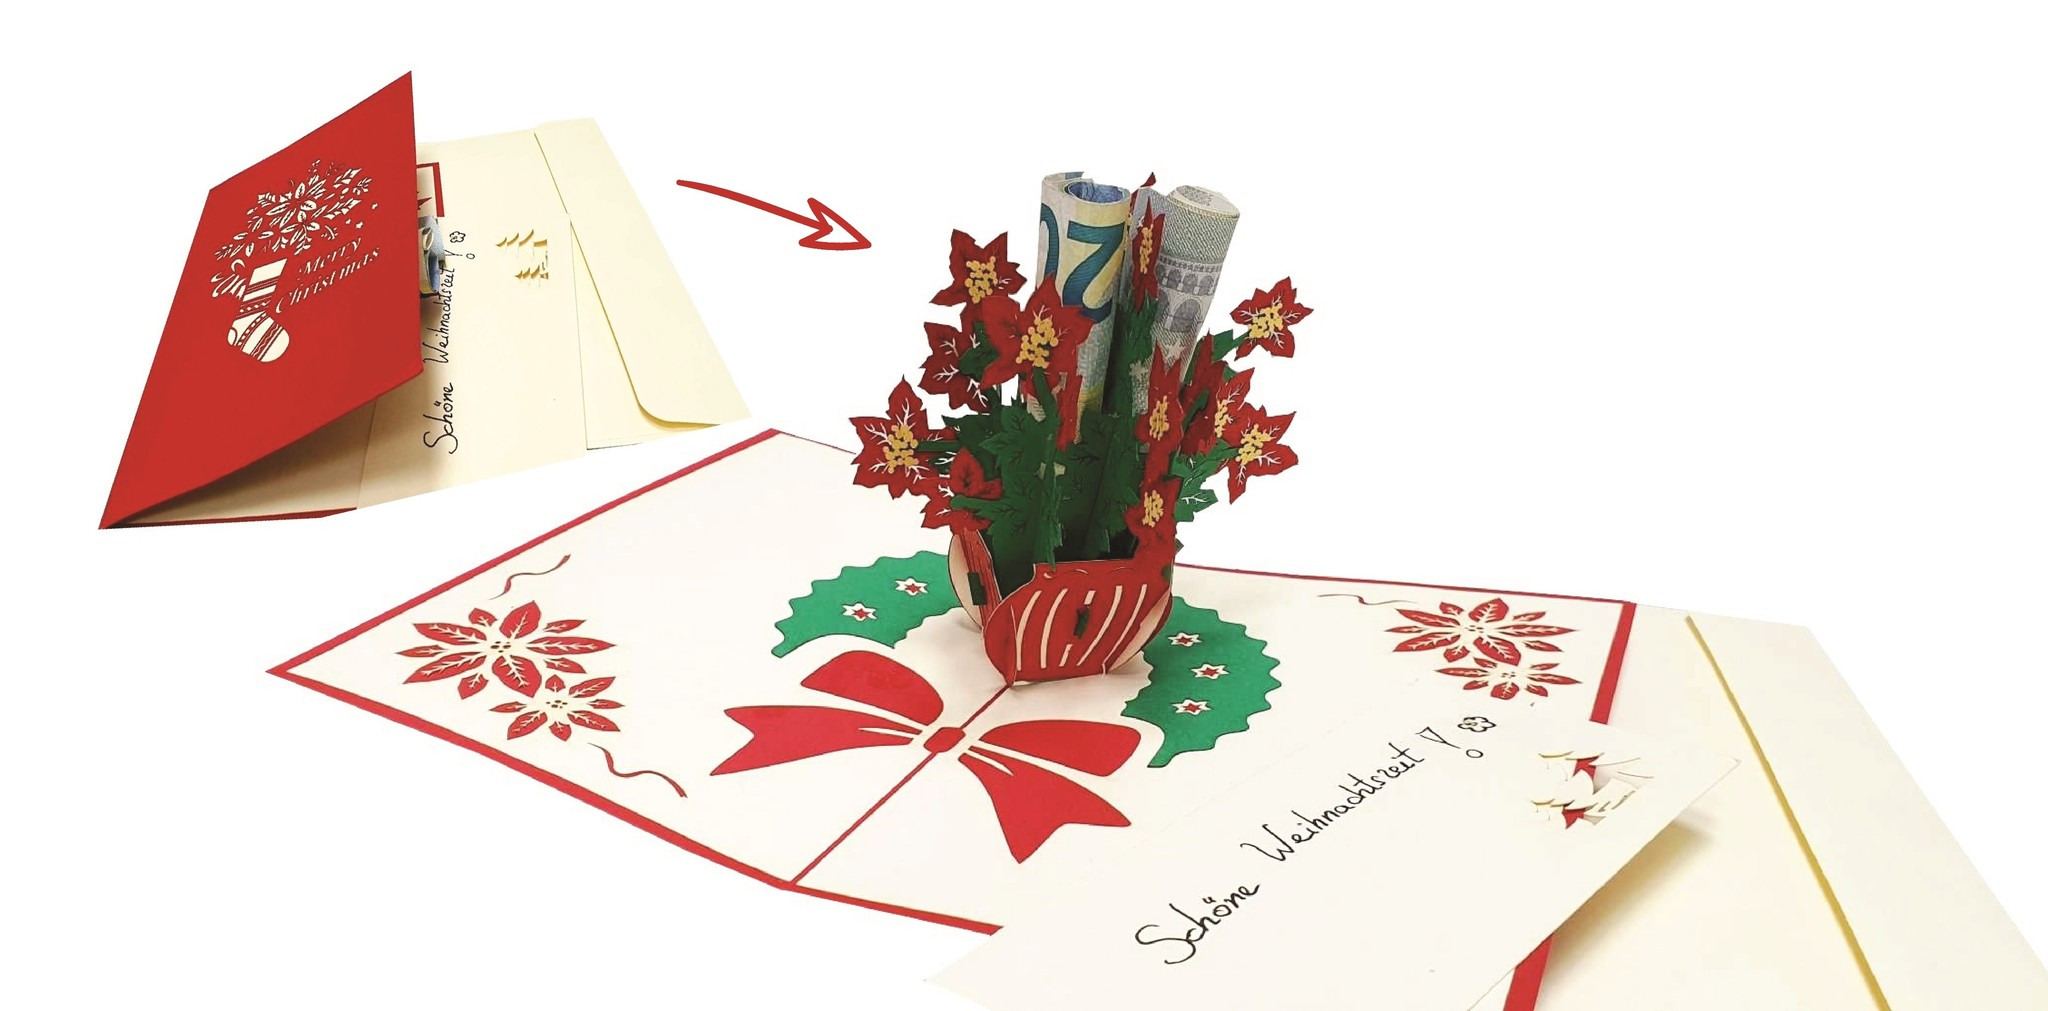 LIN17661, 3D Pop Up cards, Christmas cards, Season Greetings, Holiday Wishes, Pointsettia, N456